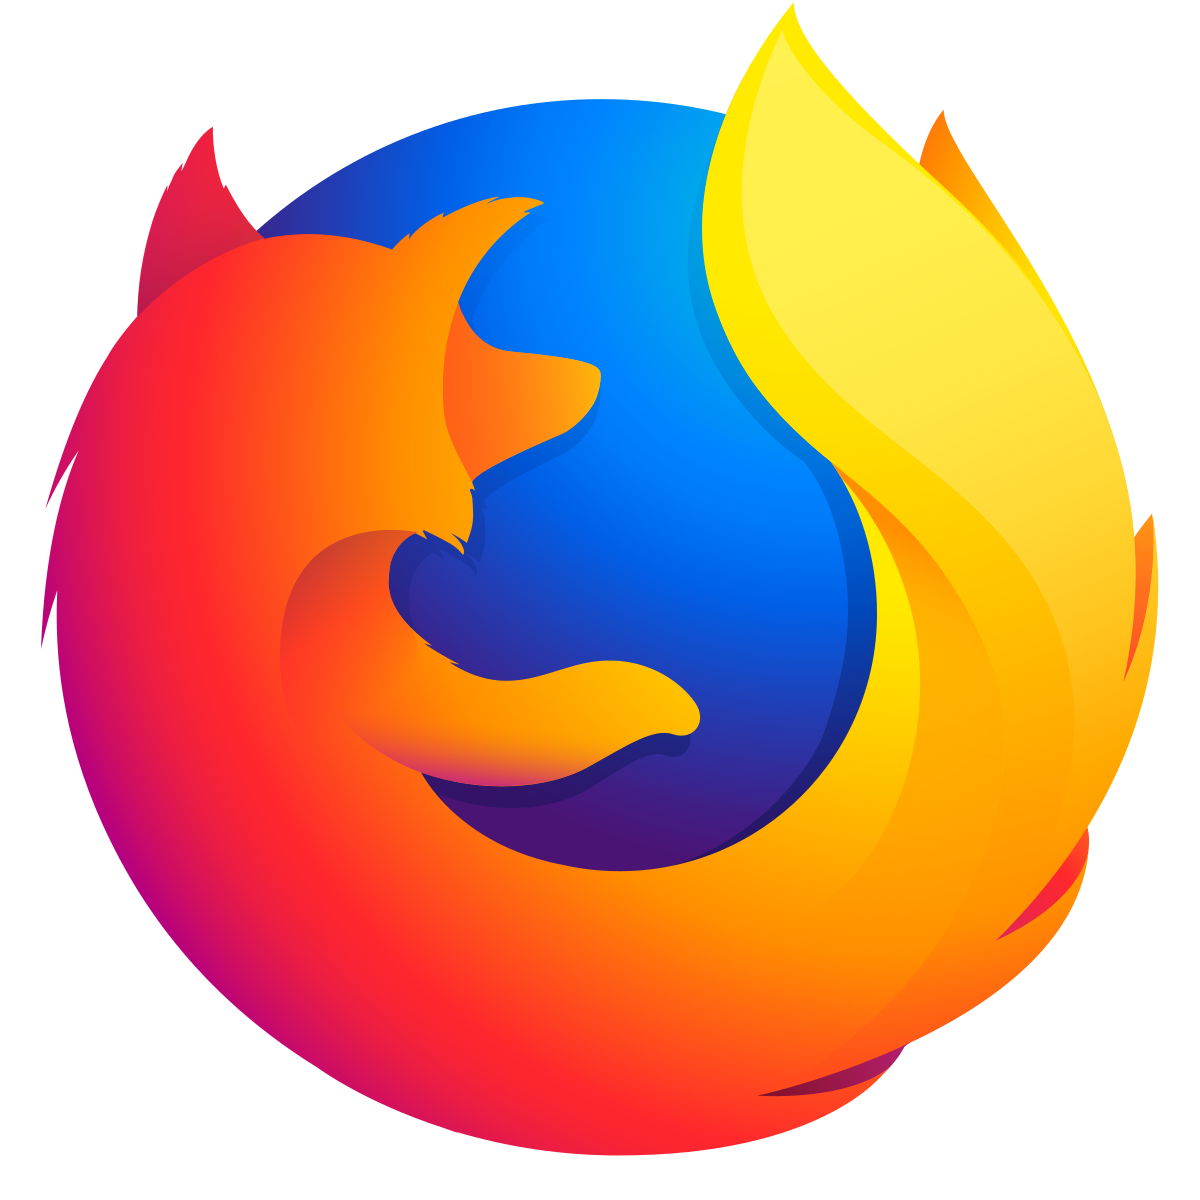 Https www google com search client firefox b 1 d&q country.